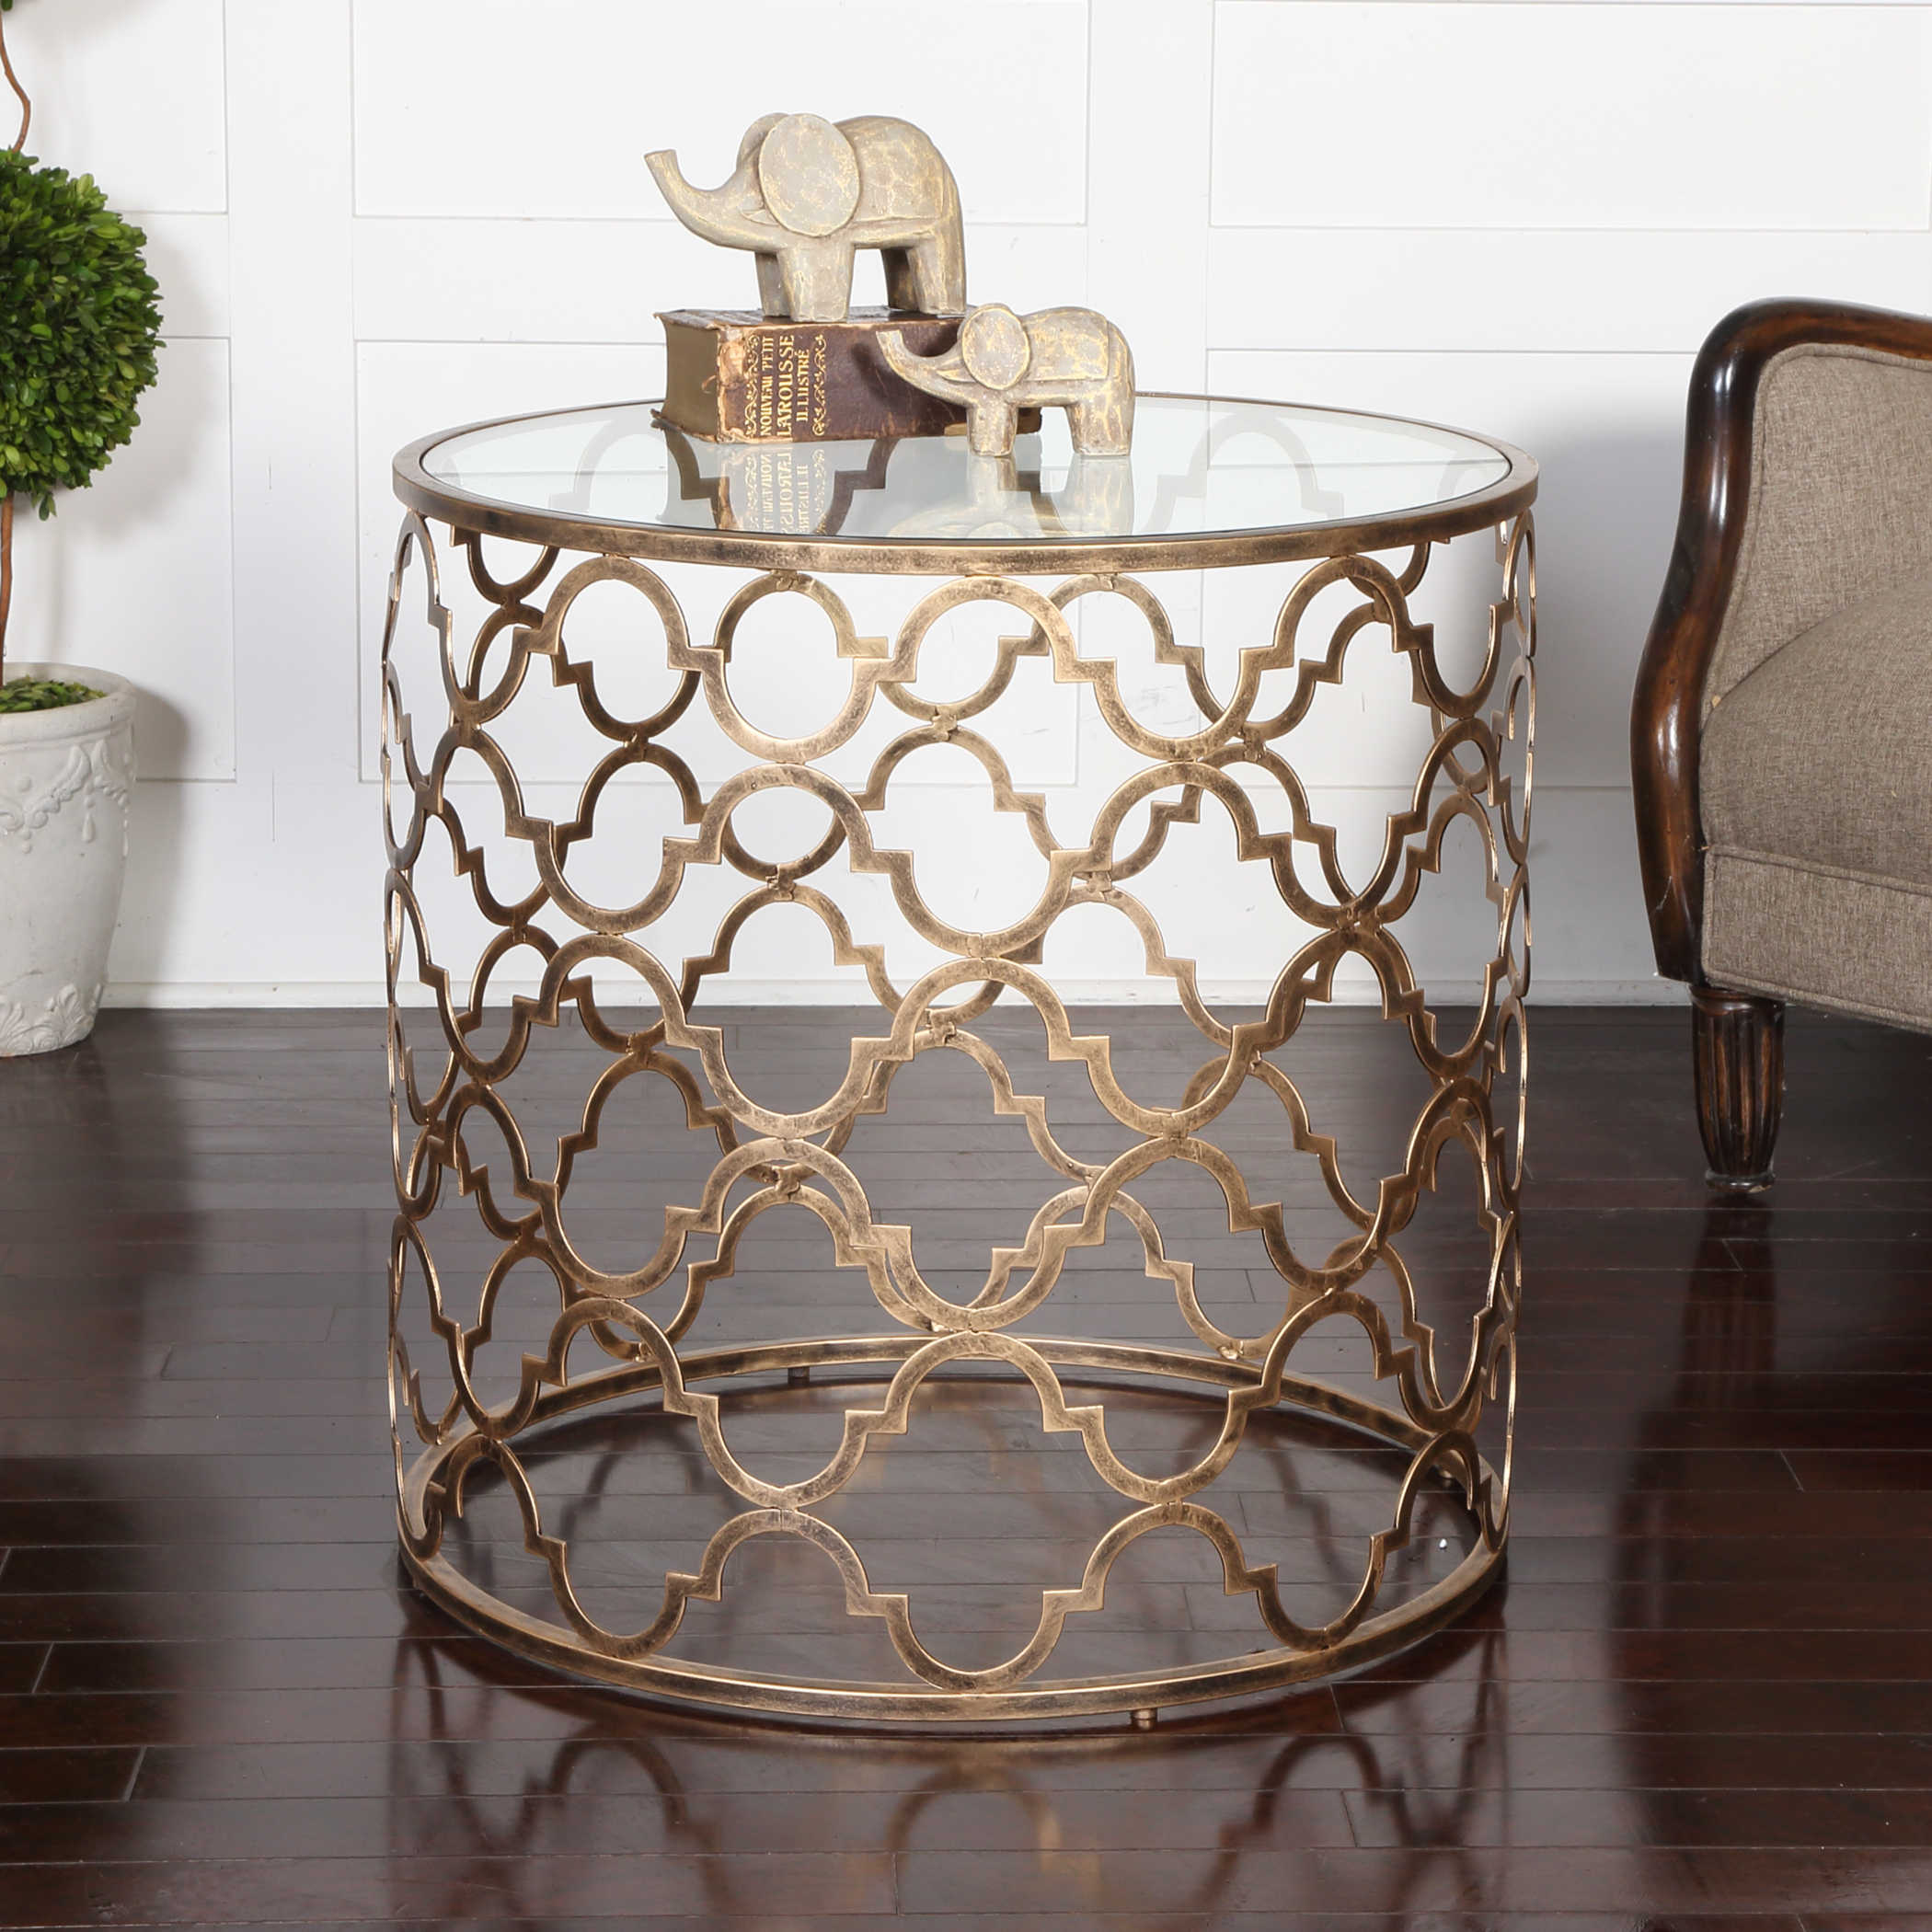 uttermost quatrefoil end table wood accent three piece set mirrored pedestal rattan cool bar solid tables with storage winsome timmy moroccan tray ikea childrens solutions old oak